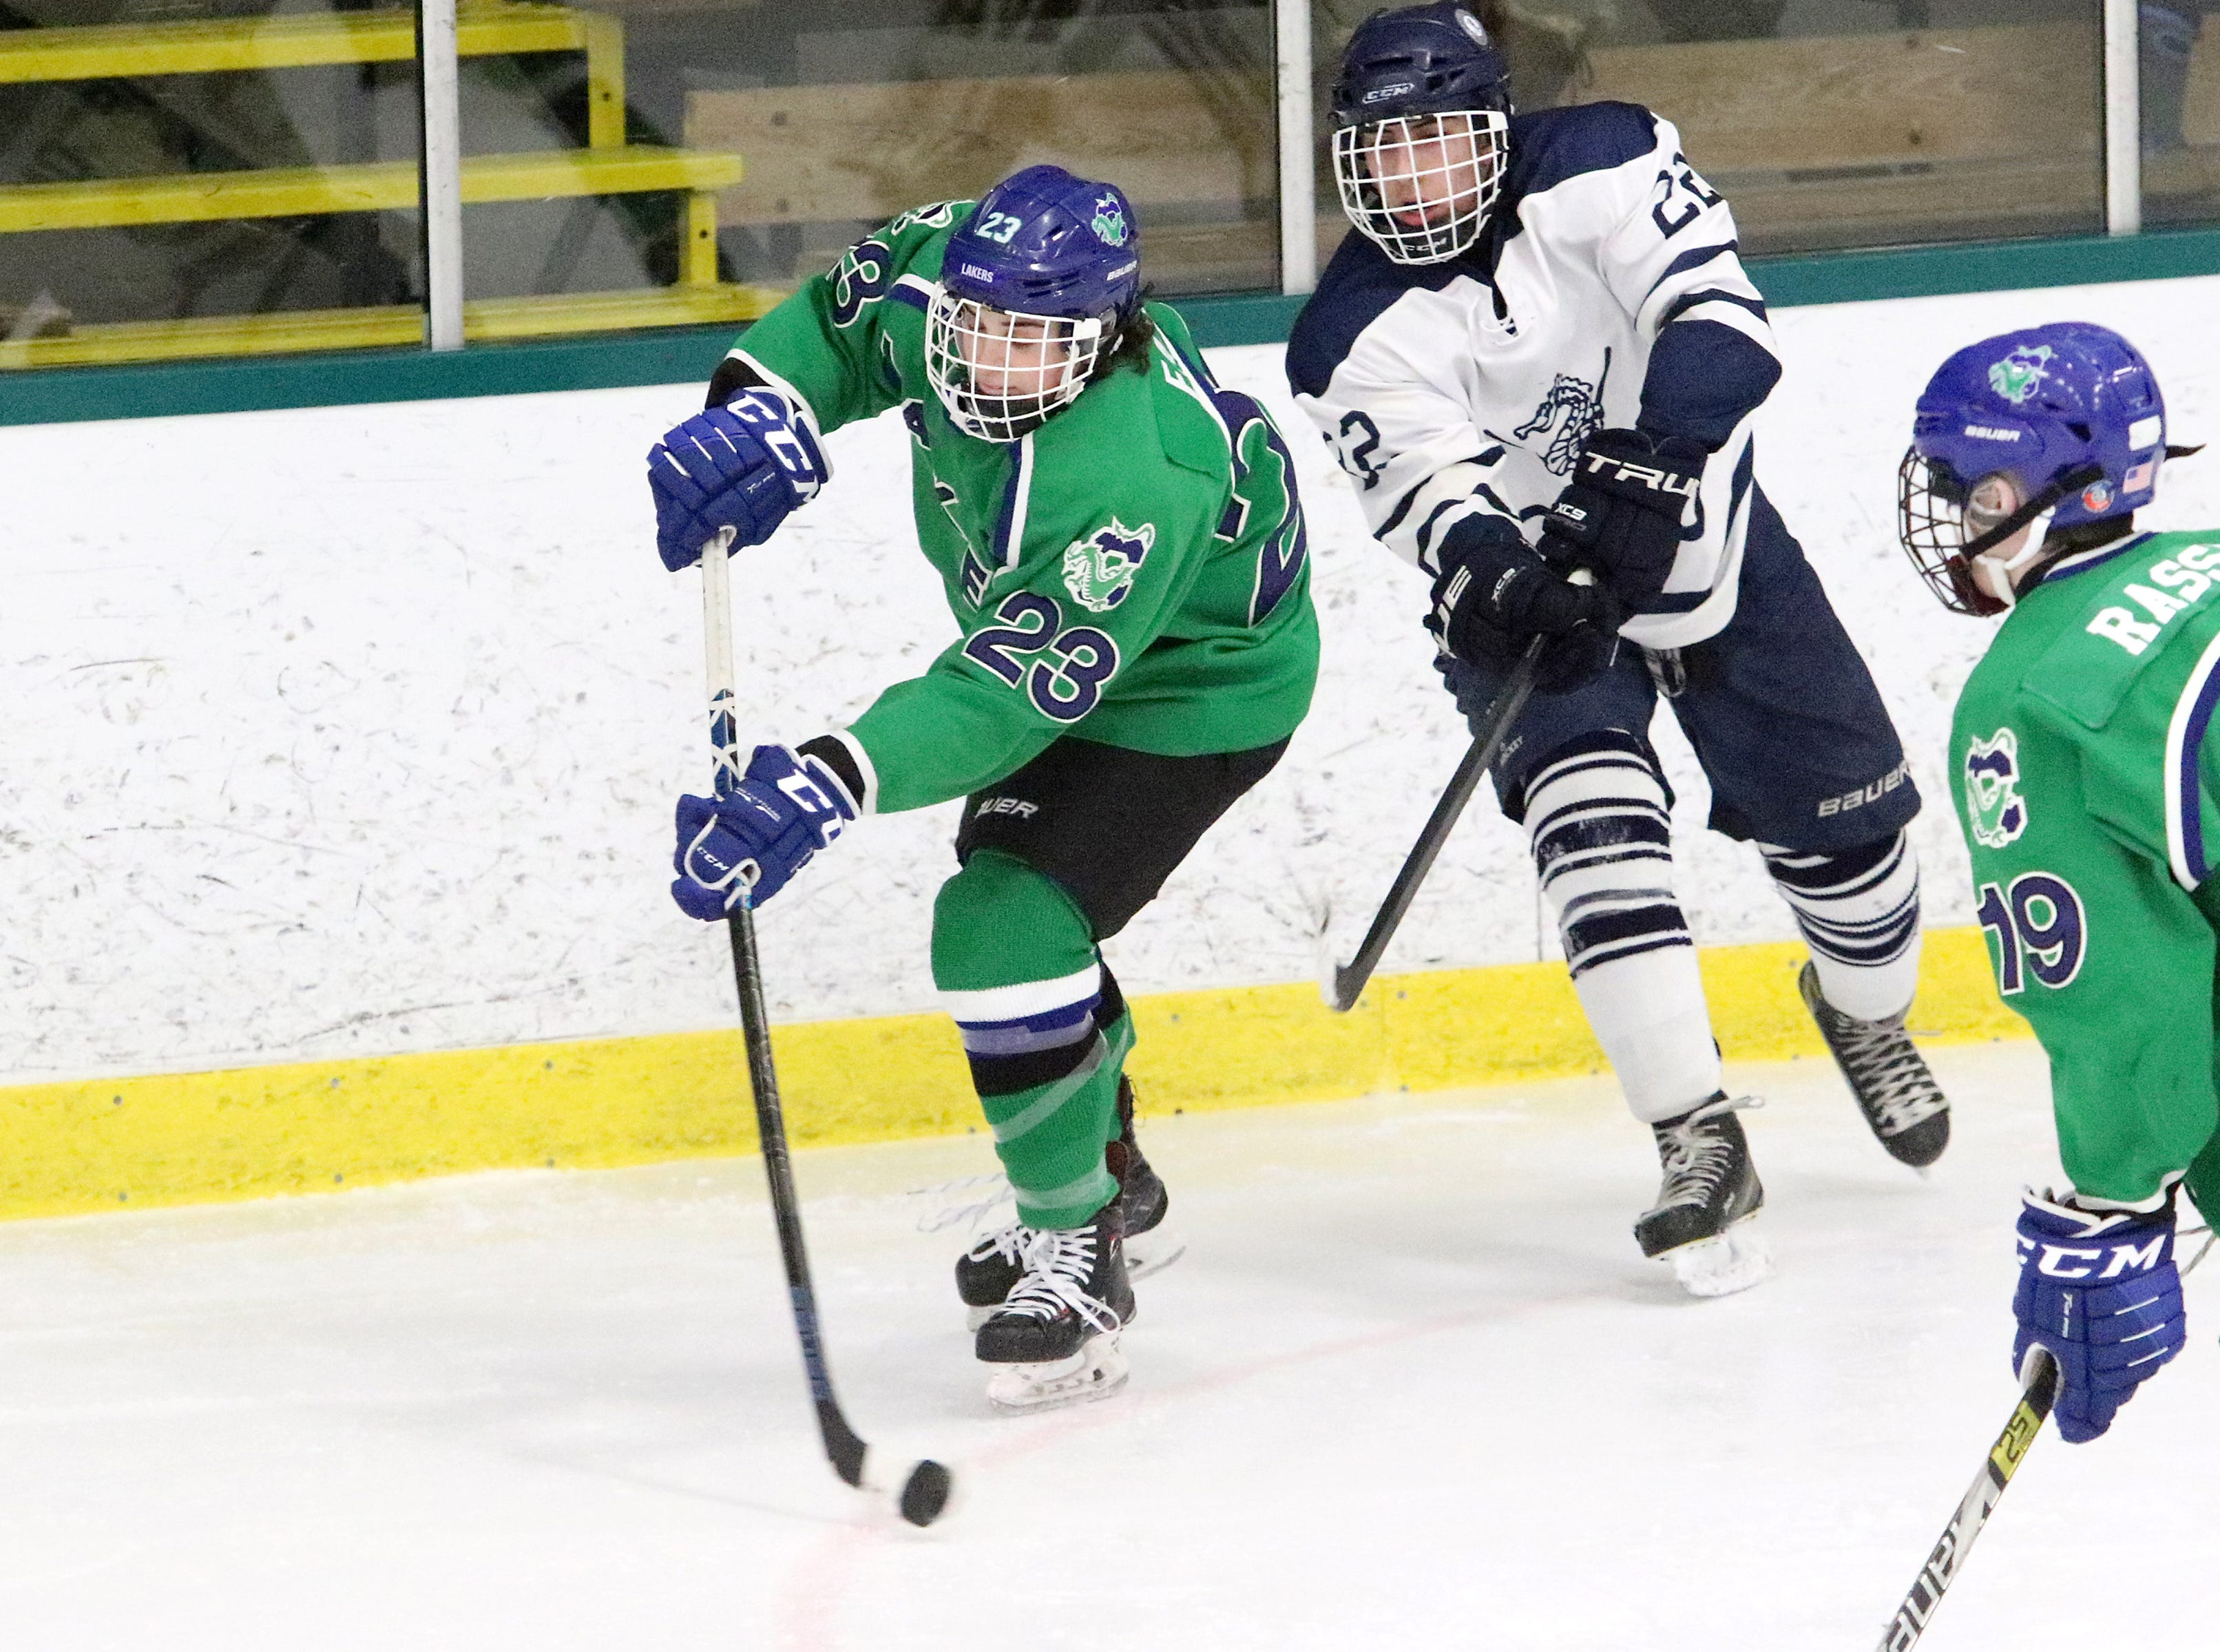 Laker defender Brendan Fath fires the puck down the ice during Colchester's 6-0 win over Burlington on Saturday. Fath netted one of the 6 Laker goals.